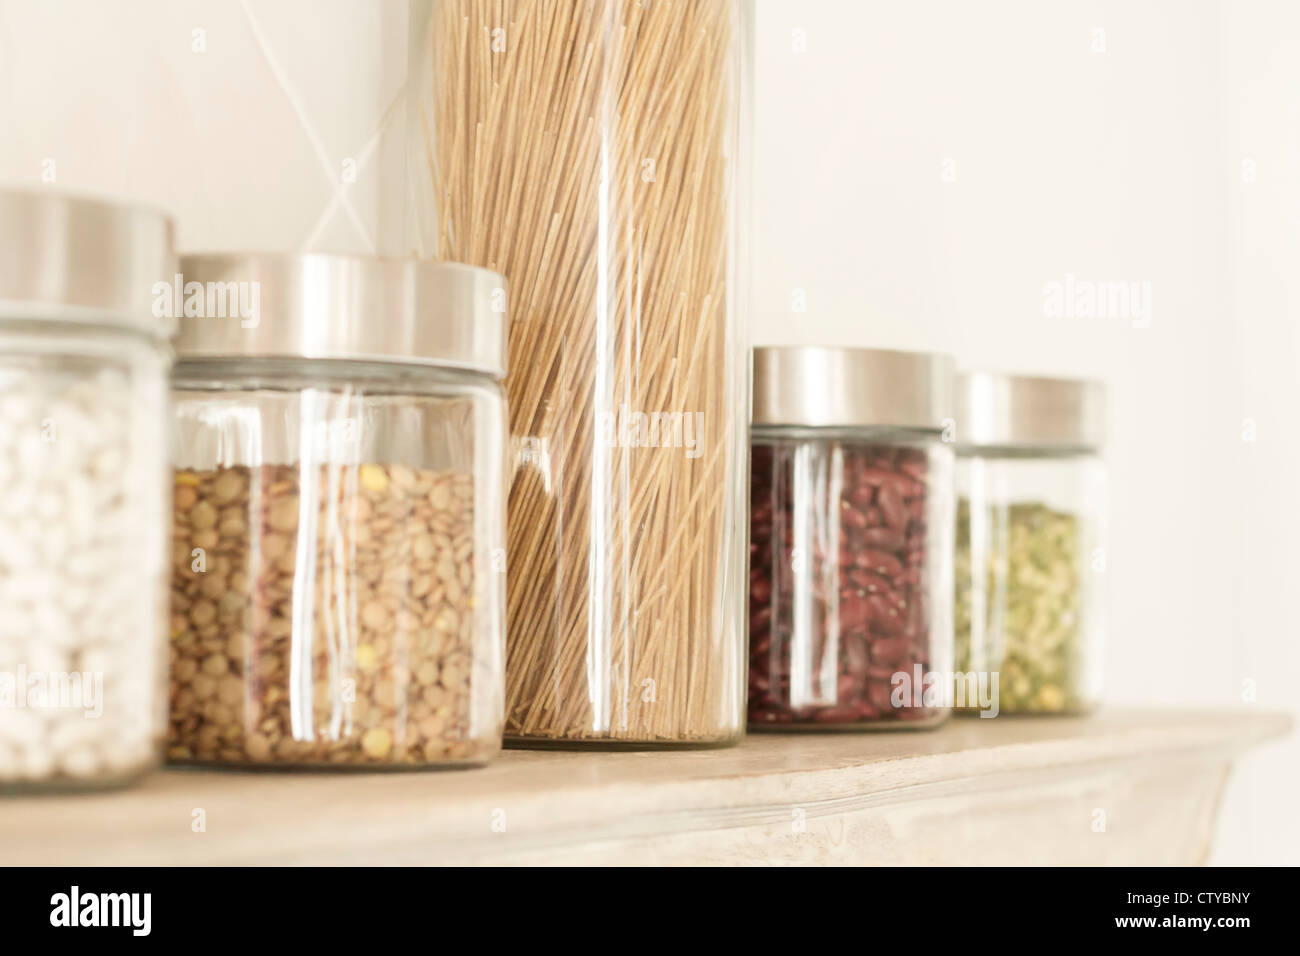 Pasta, lentils and beans in jars on shelf. - Stock Image